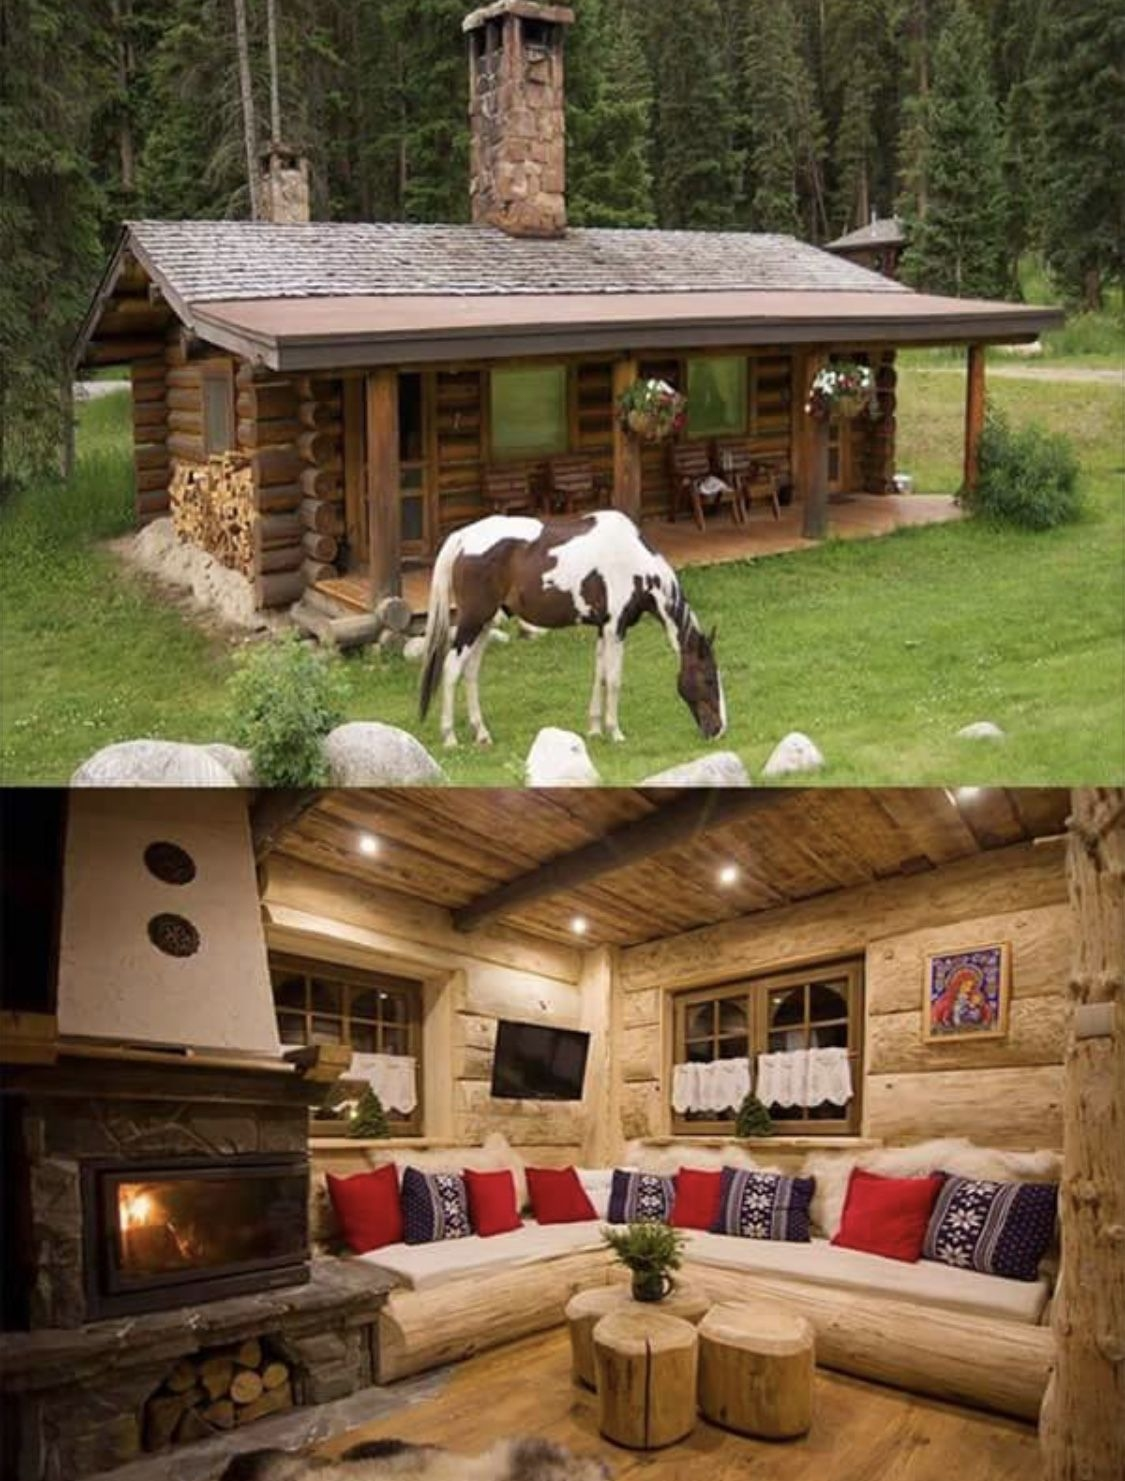 60 Small Mountain Cabin Plans with Loft Awesome Pin by Jirka Hlavaty On Beautiful Homes In 2019